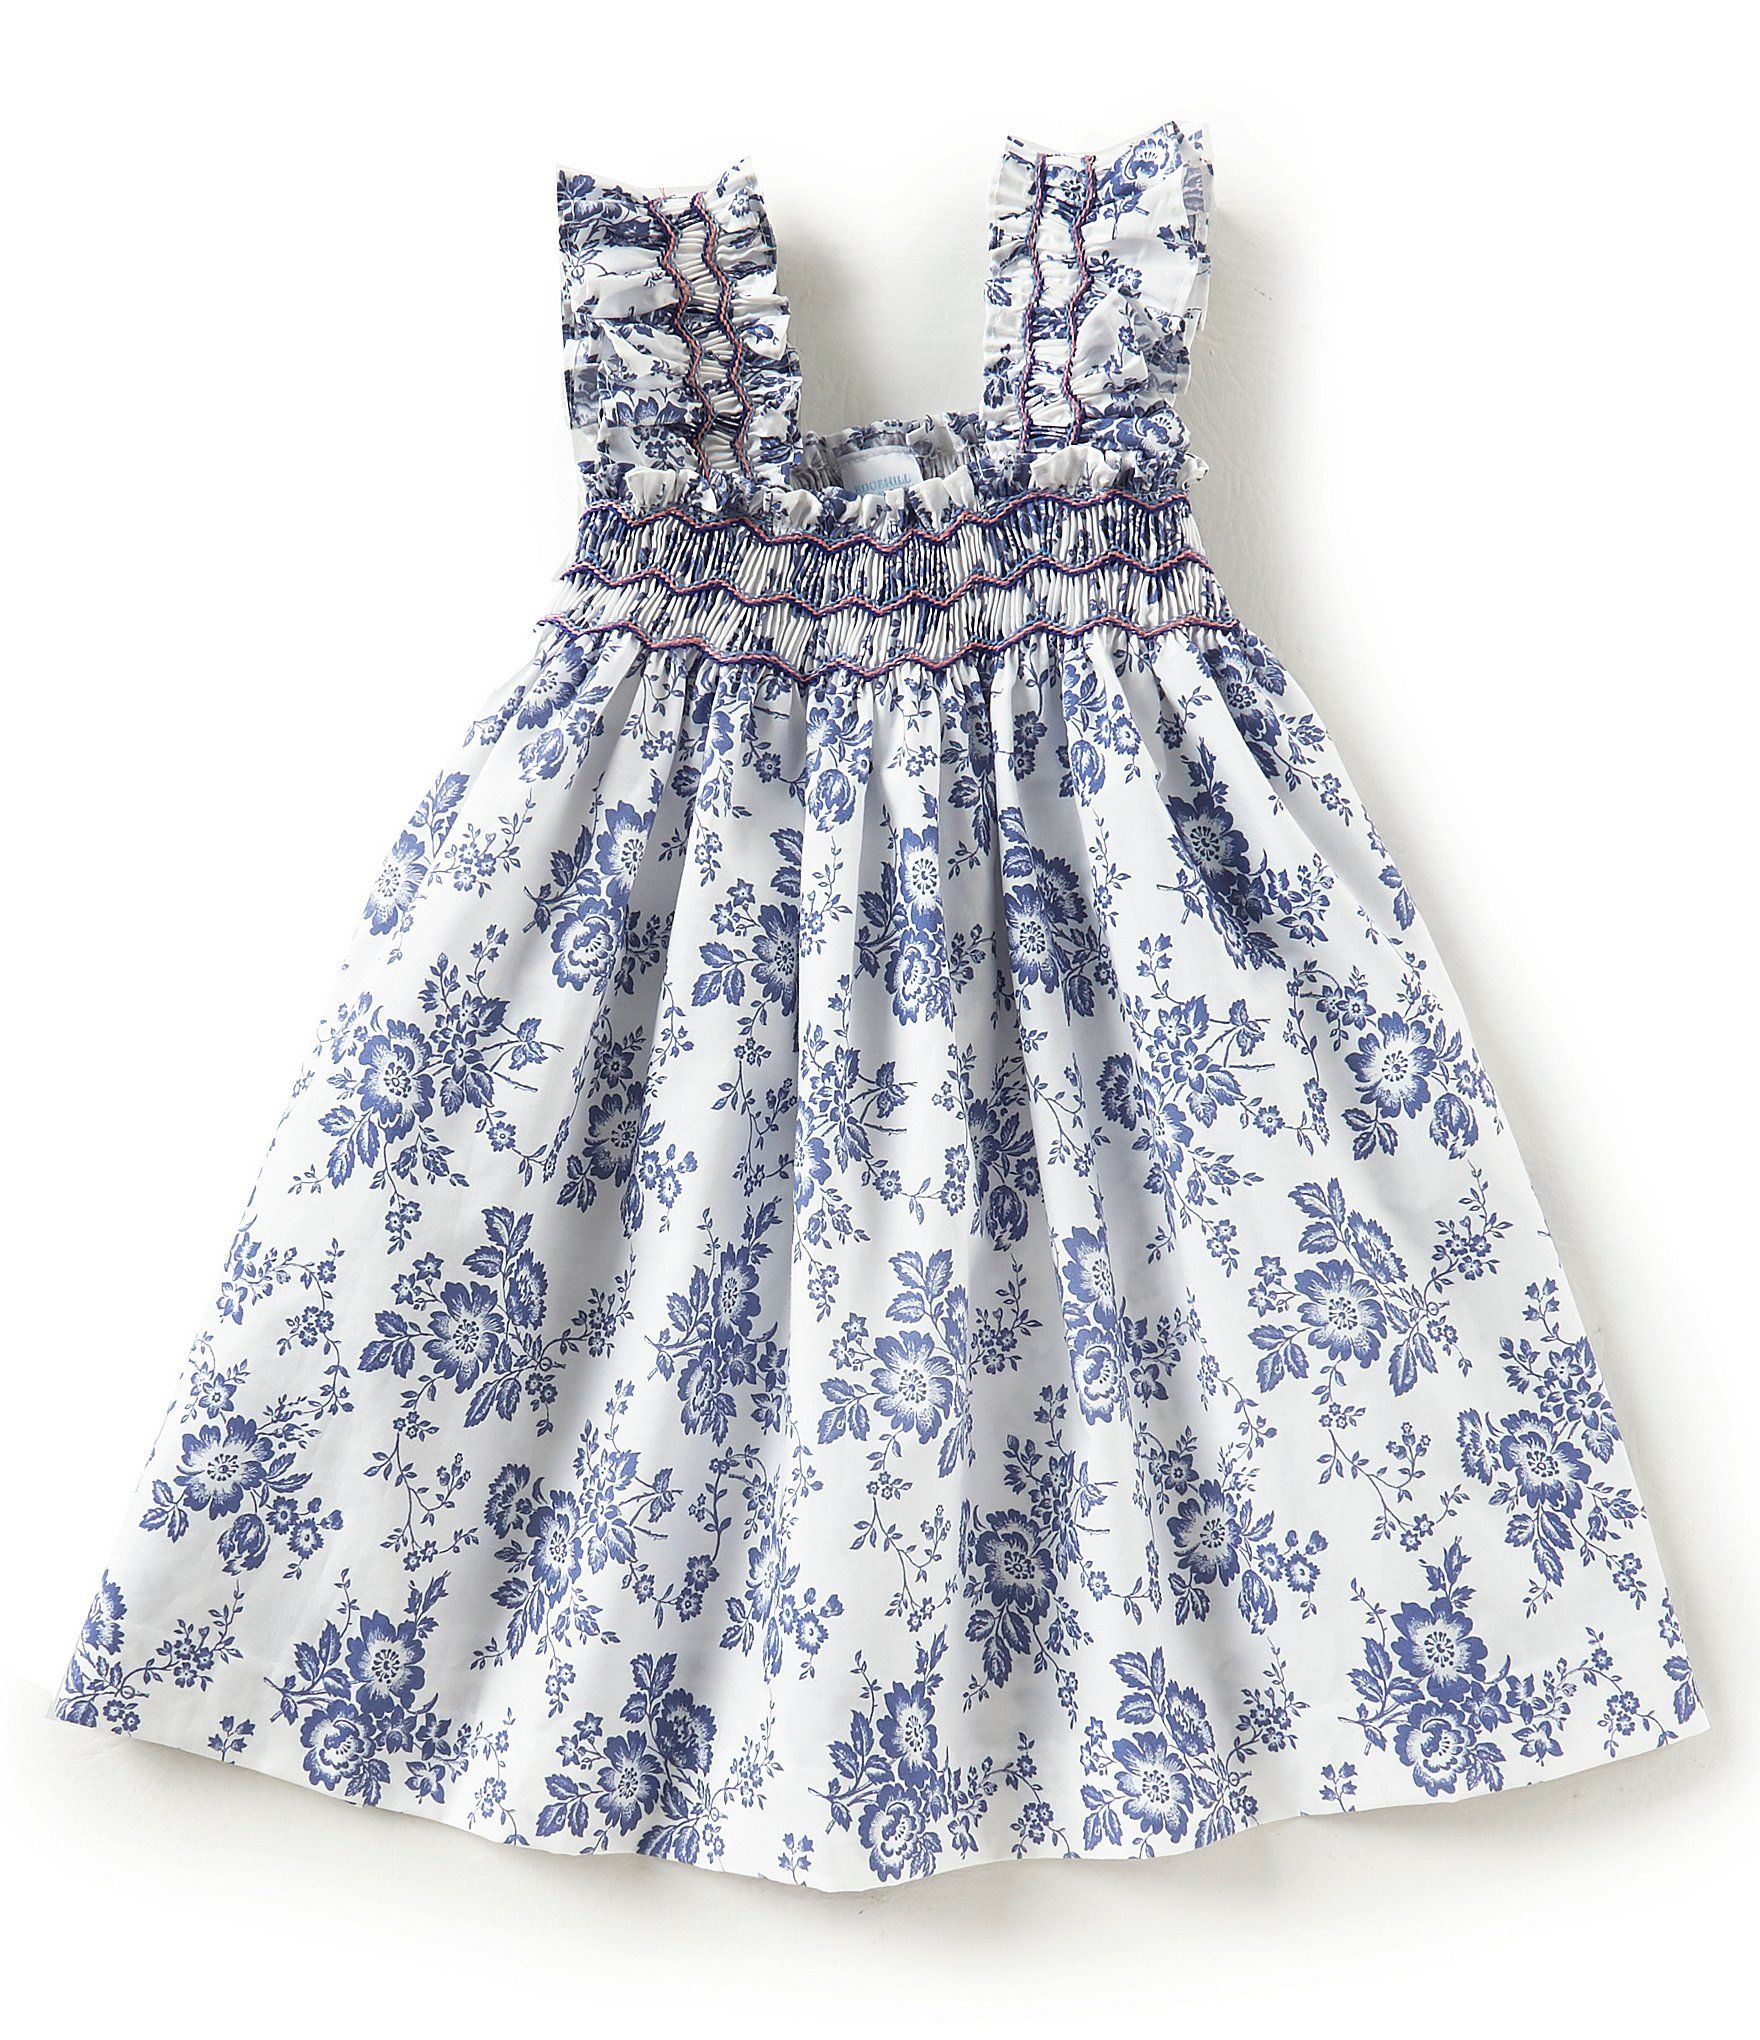 c720239b1c5 Shop for Edgehill Collection Little Girls 2T-6X Floral Smocked Dress at  Dillards.com. Visit Dillards.com to find clothing